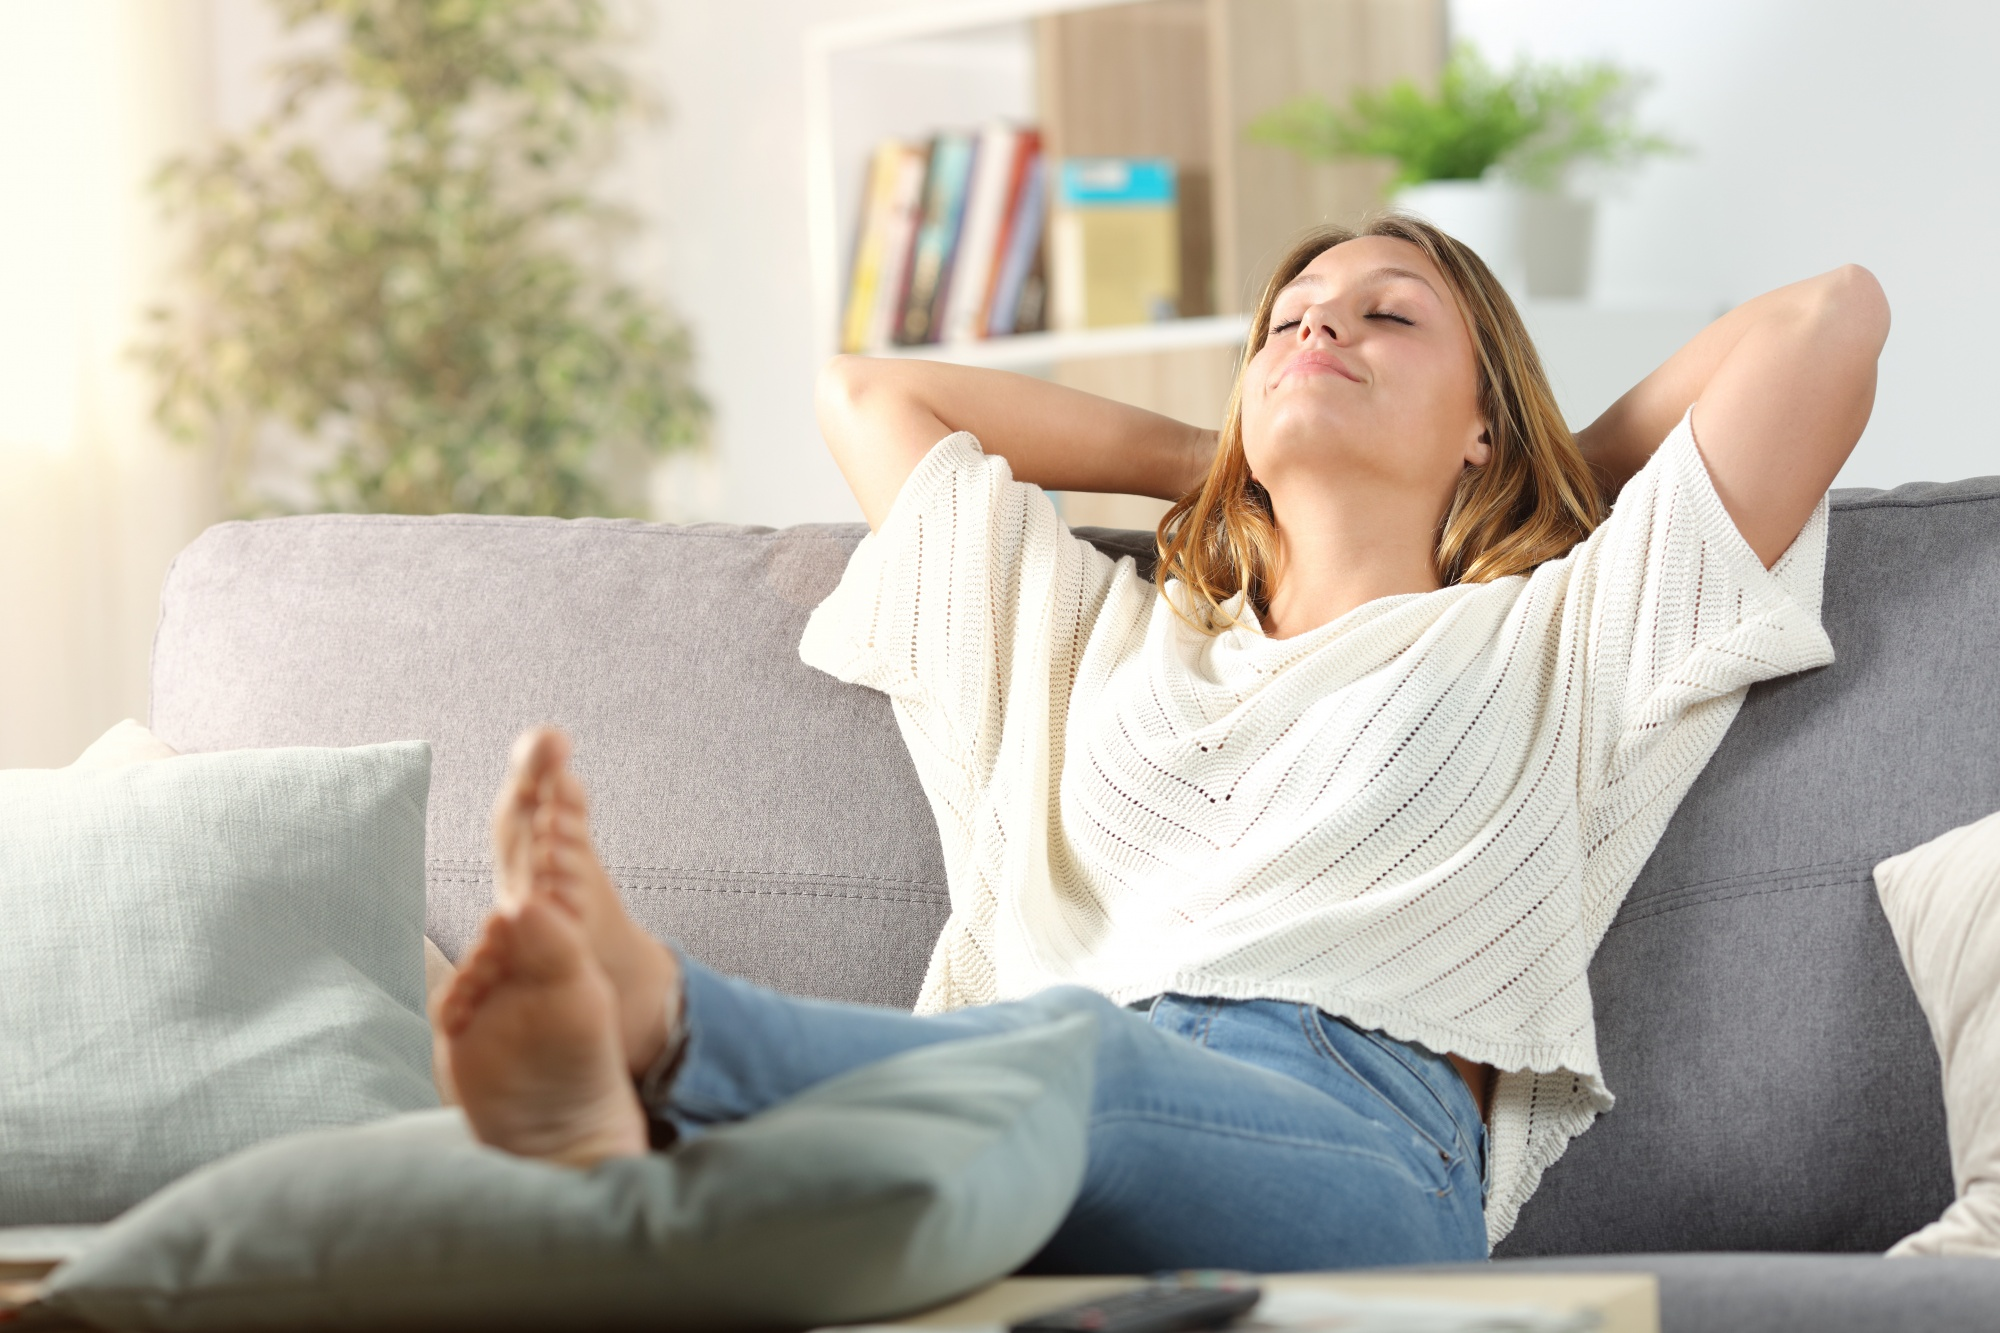 New Year's Resolutions, Carefree woman relaxing sitting on a sofa at home in jeans and blousy white top